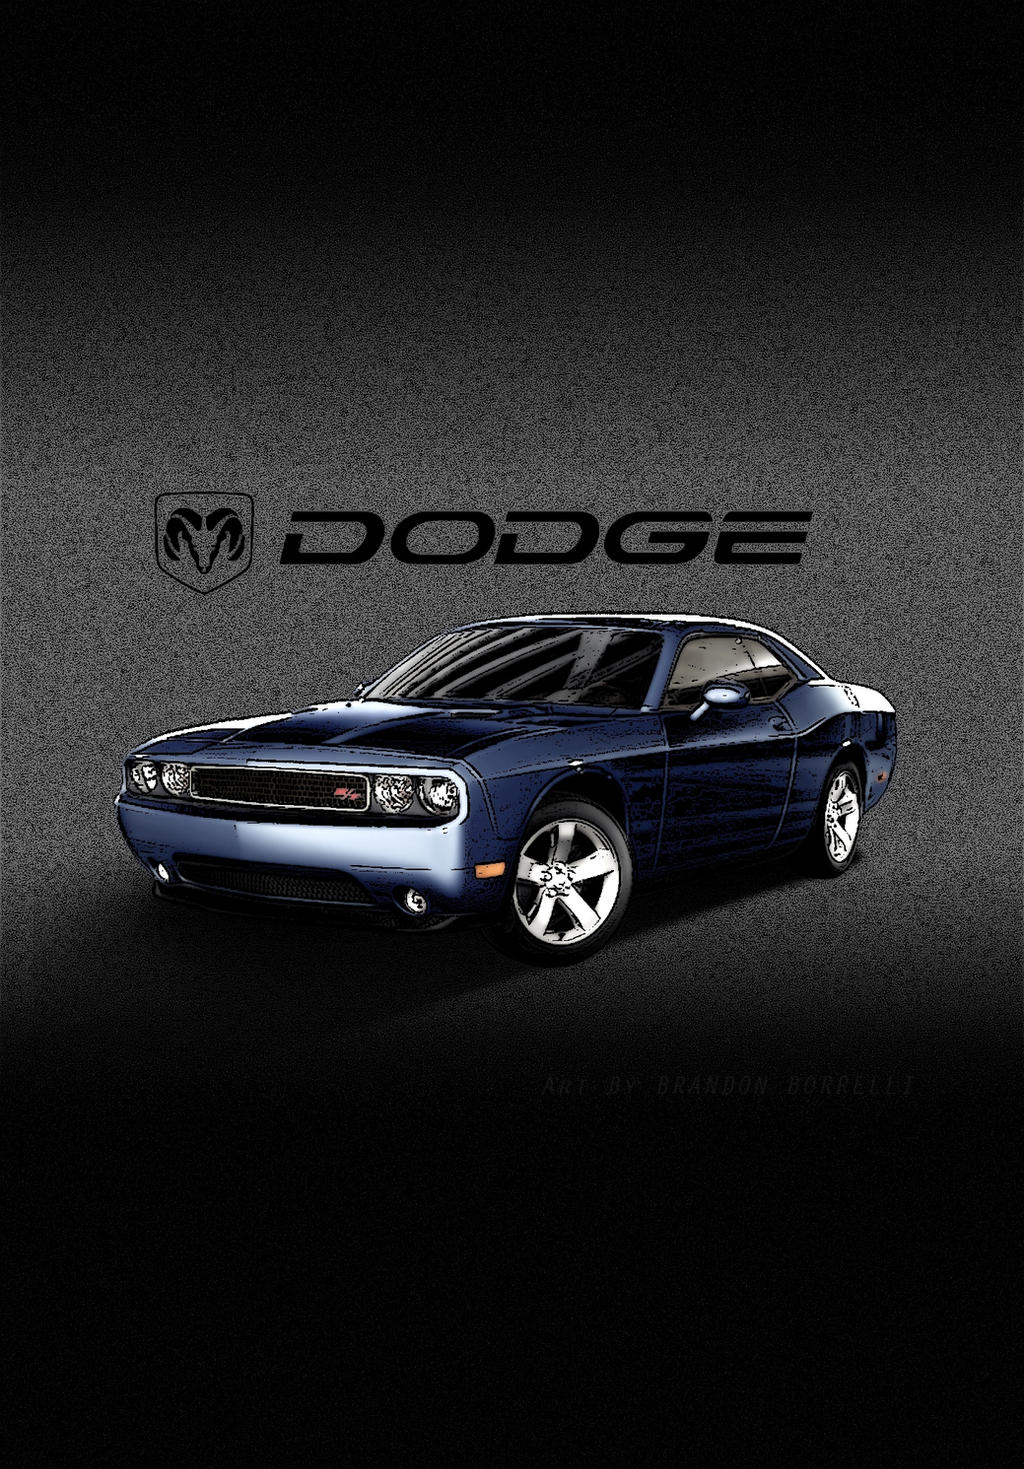 Dodge challenger mobile wallpaper lock screen by brrelli on deviantart dodge challenger mobile wallpaper lock screen by brrelli sciox Image collections